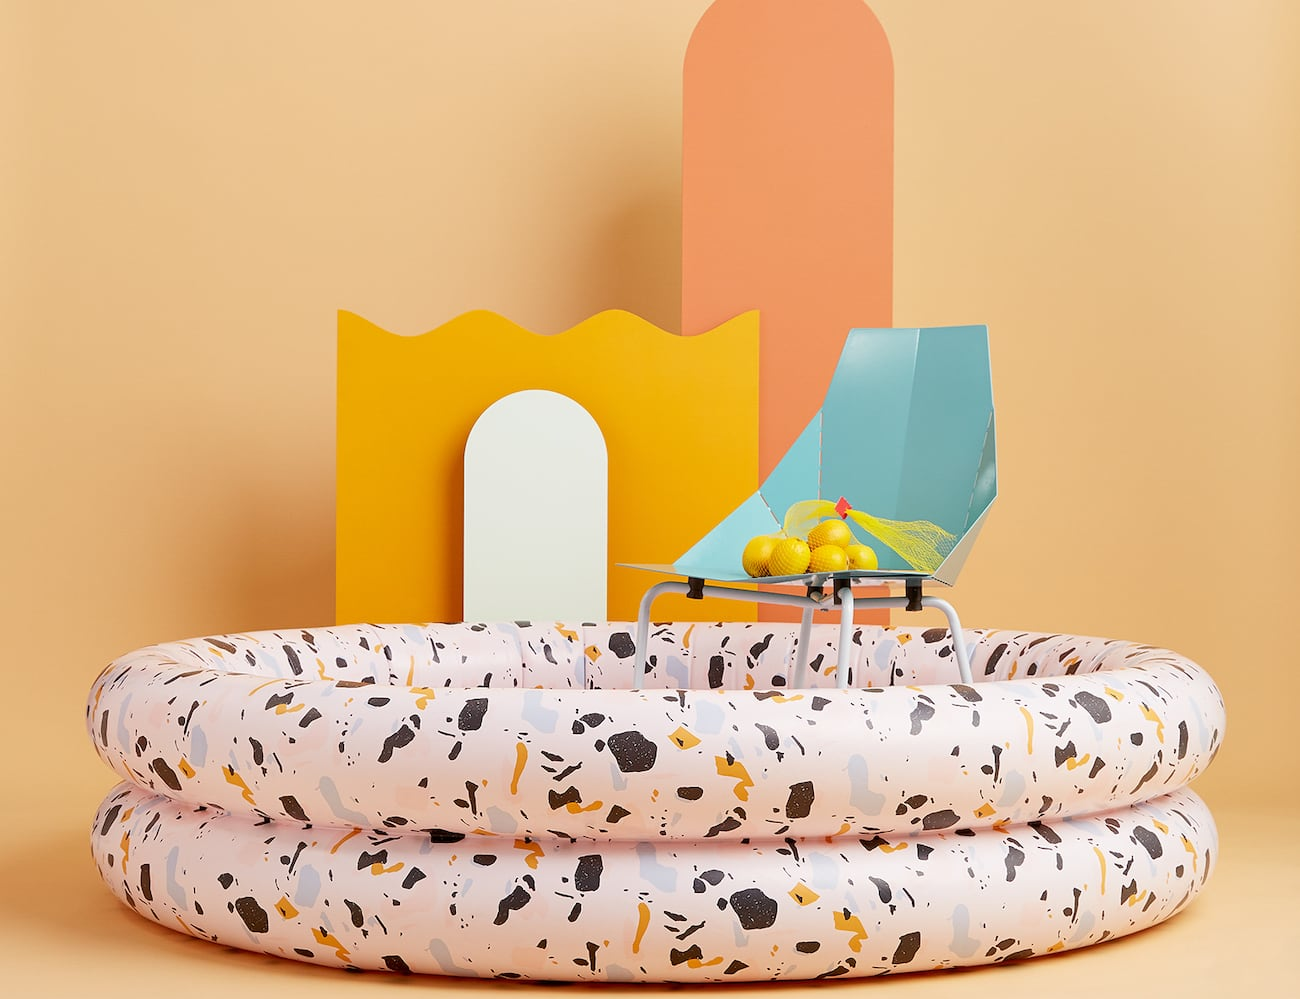 Mylle Modern Inflatable Pools are a convenient and artistic way to beat the heat